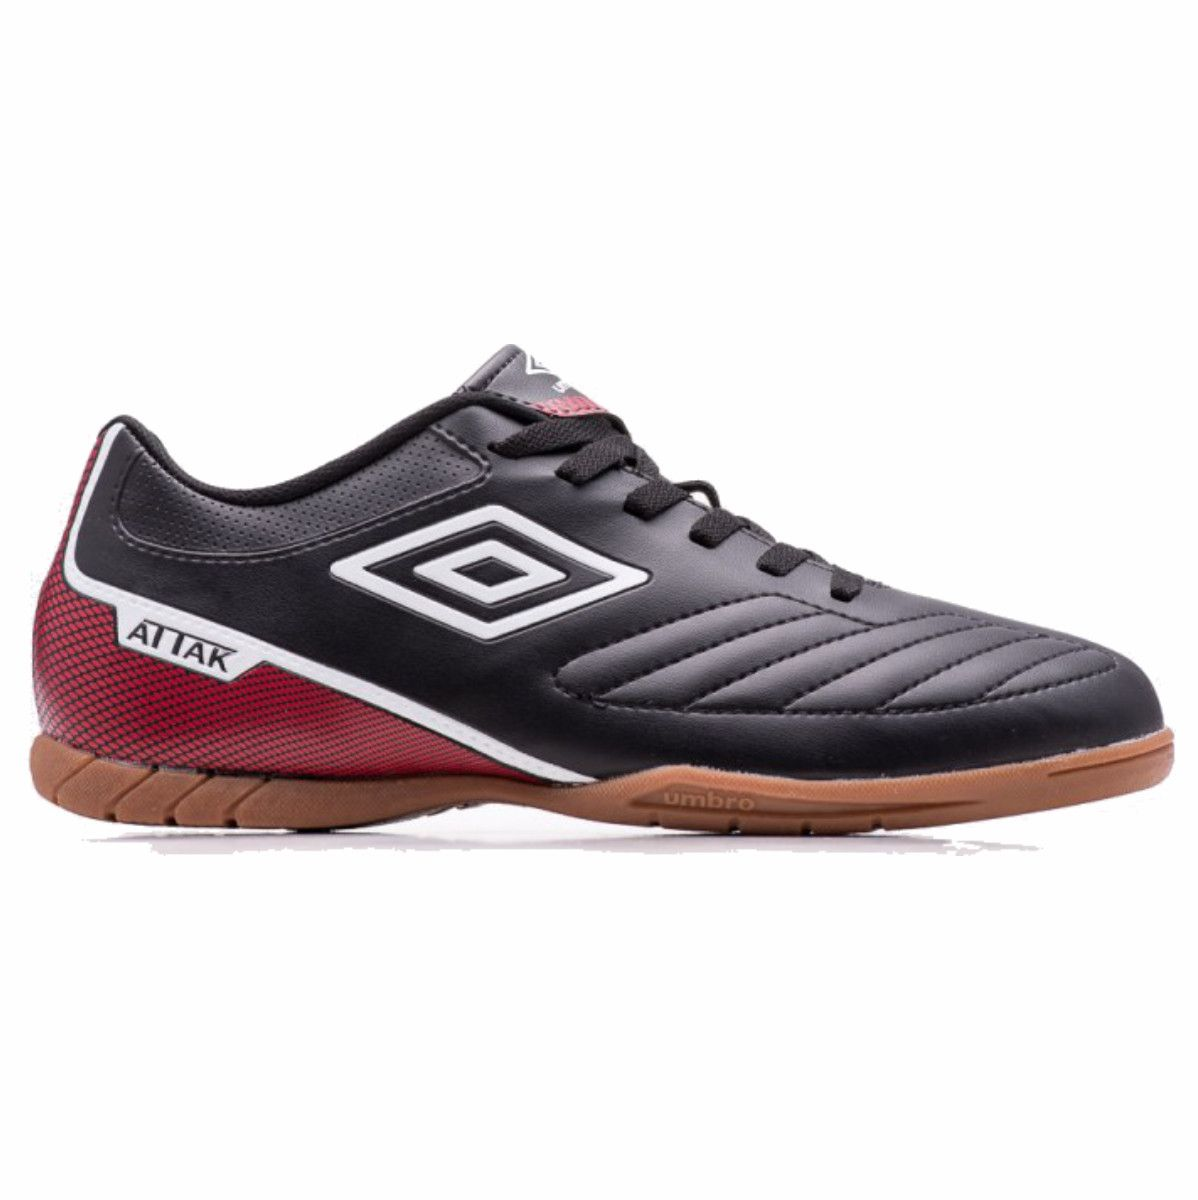 Tenis Indoor Umbro Attak II Futsal Preto